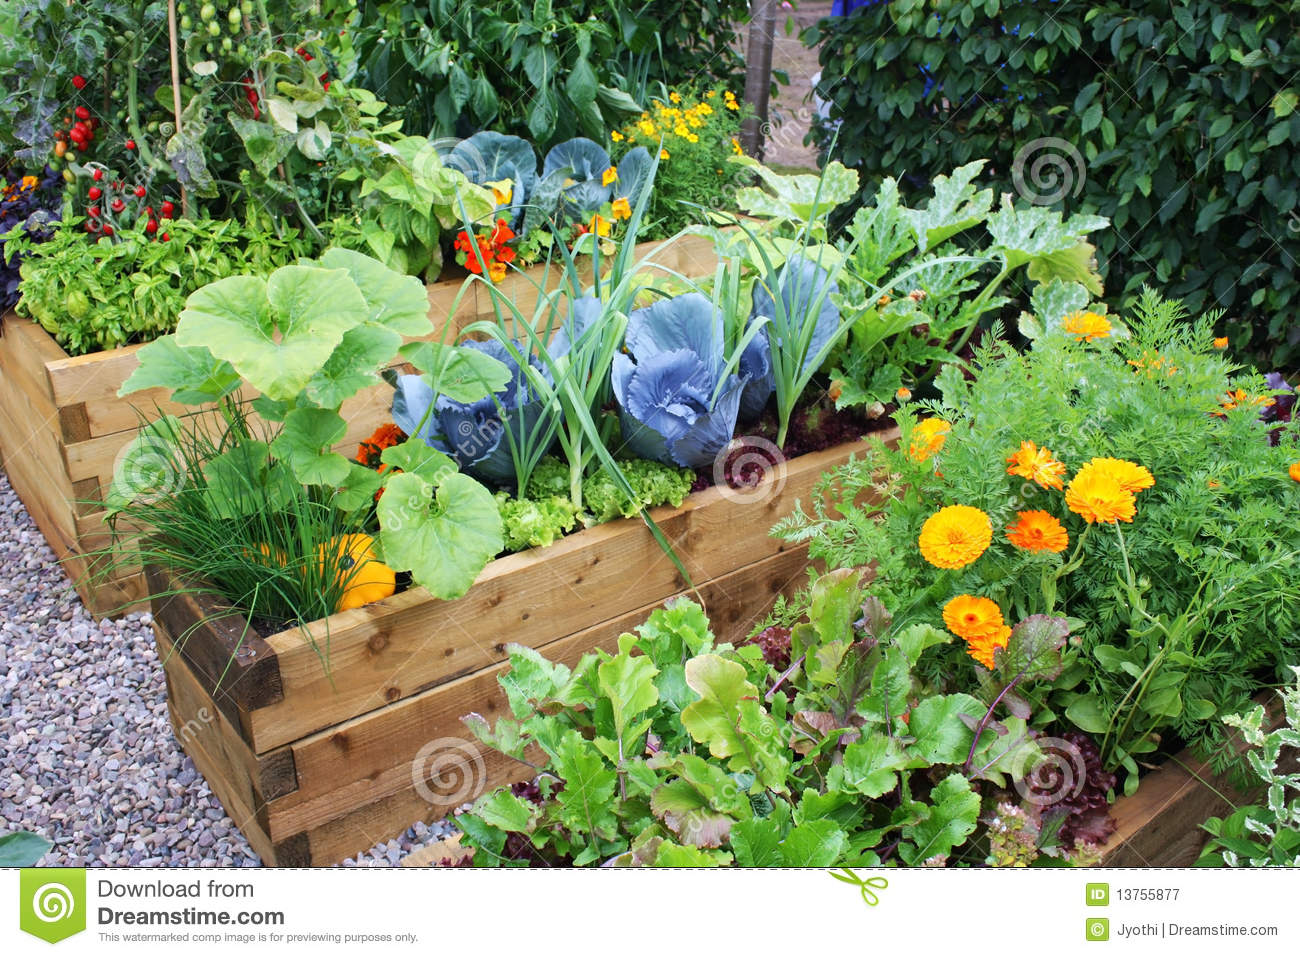 Wooden bed frame plans - Vegetable Garden Royalty Free Stock Photography Image 13755877